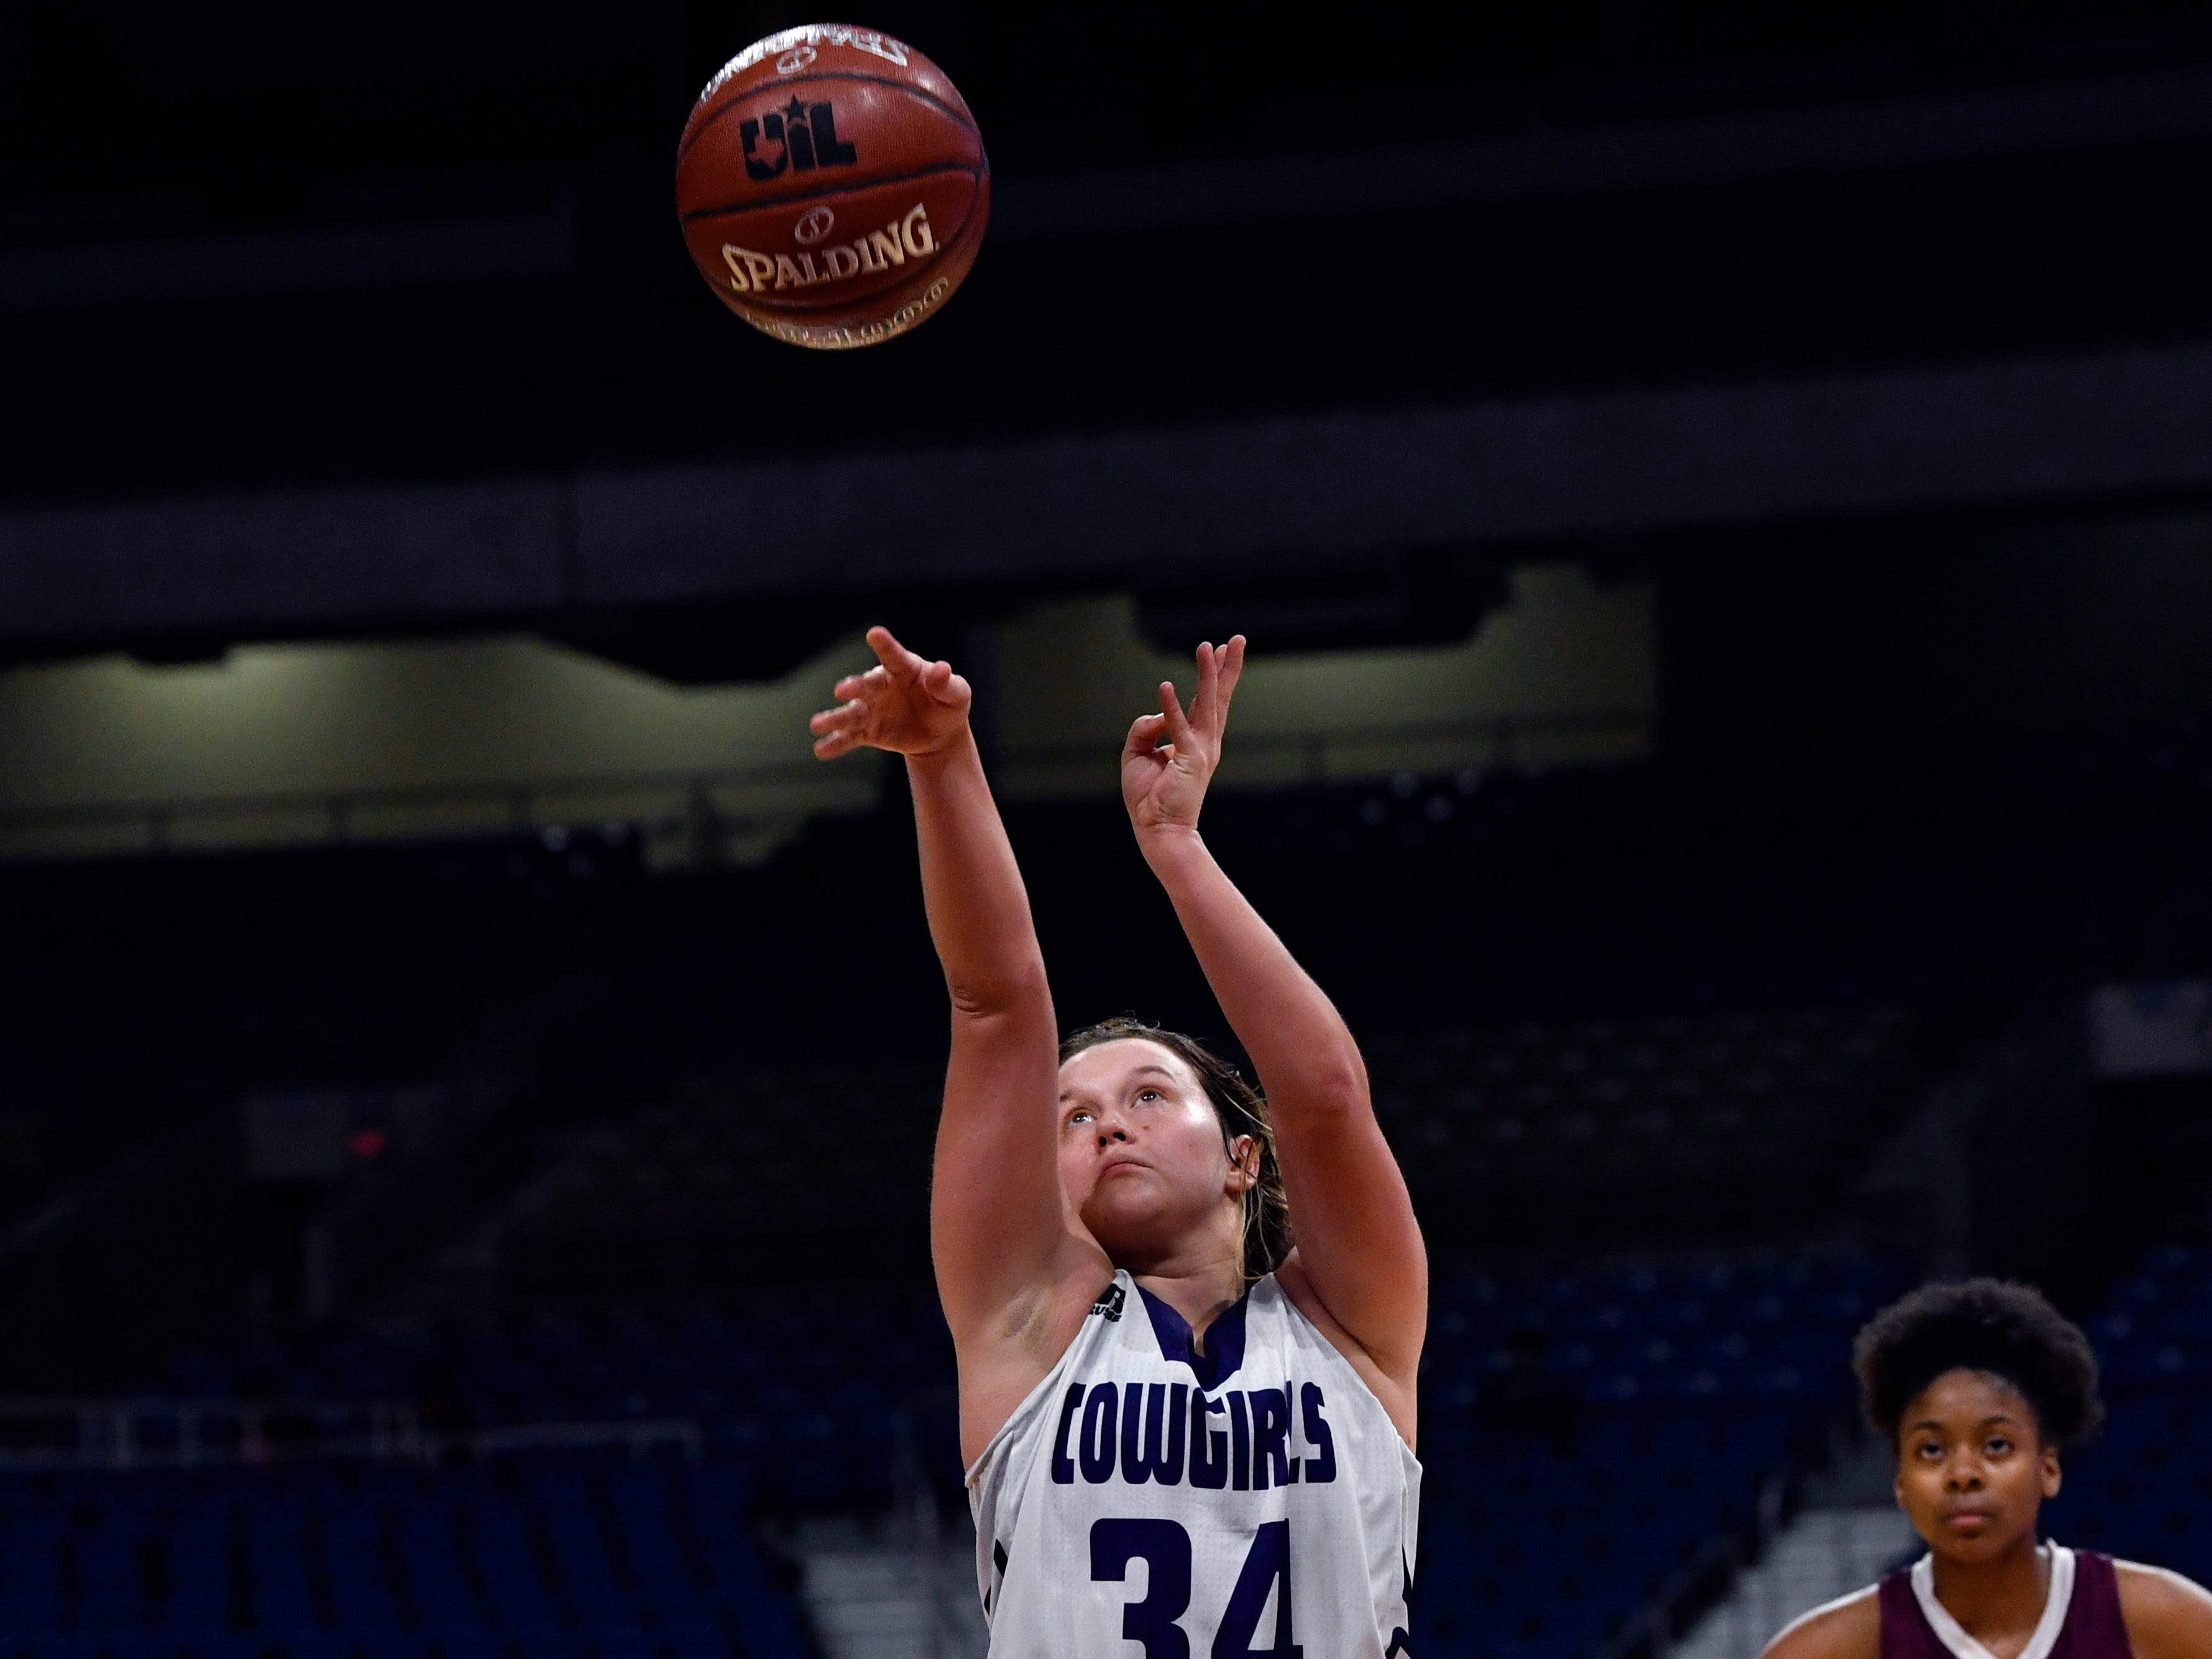 Mason forward Jesse Armstrong shoots a free throw during Friday's UIL Class 2A girls state basketball semifinal against Grapeland at the Alamodome in San Antonio March 1, 2019.